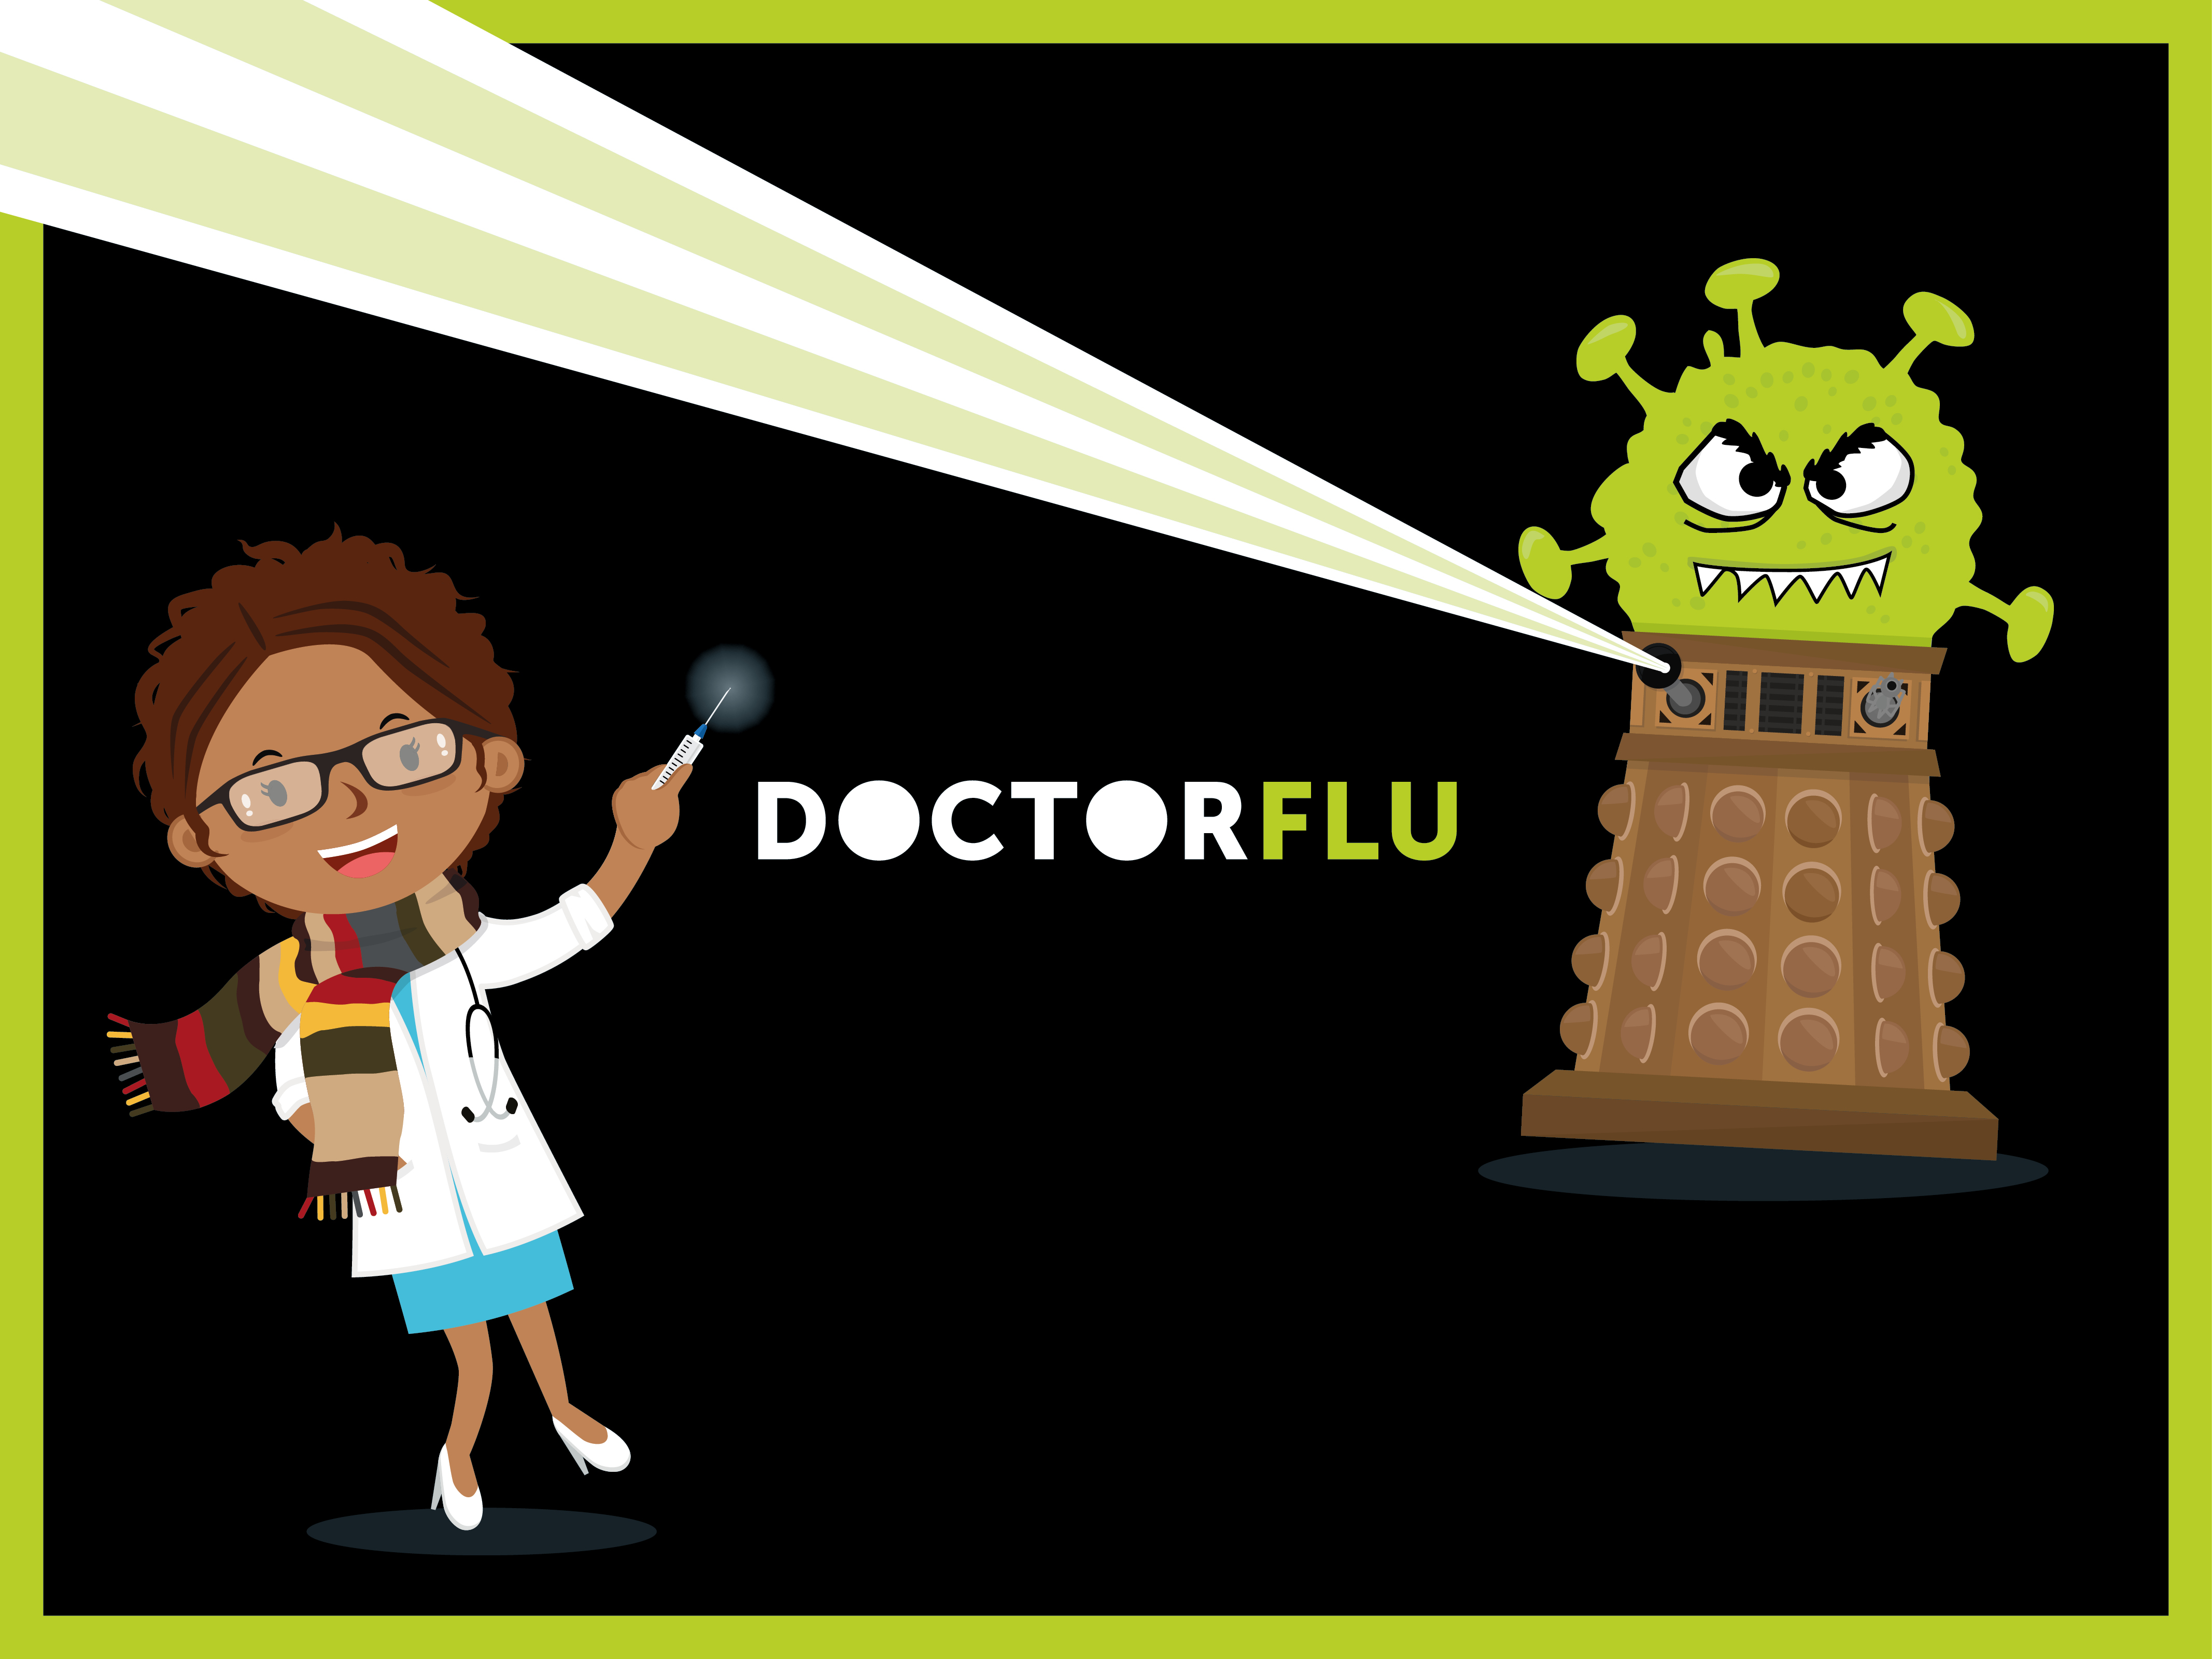 Vaccinations doctor oh well. Flu clipart needle stick injury